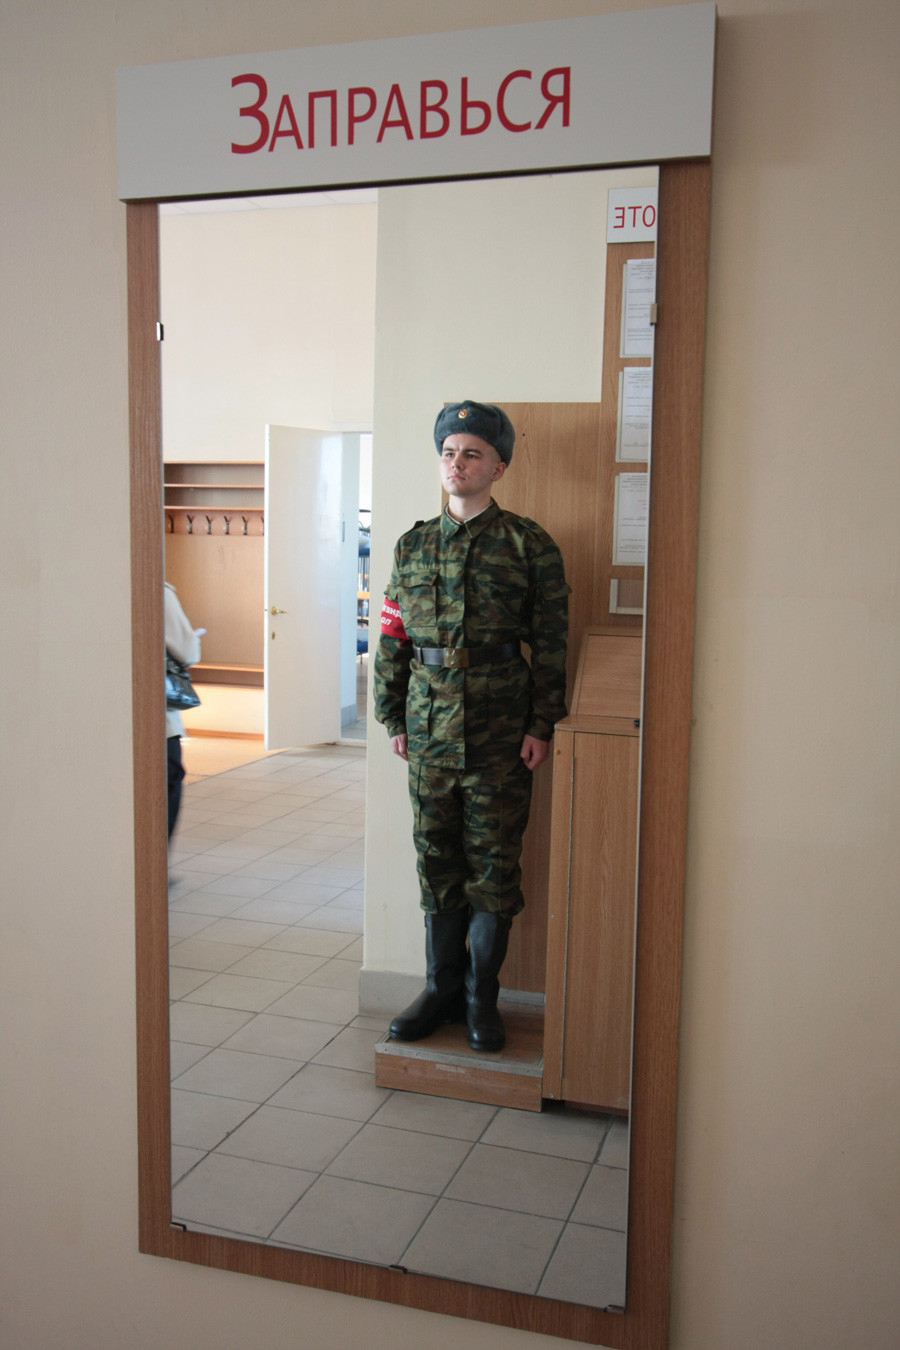 Barracks soldier is on duty at Patriot enlistment office in Kazan.